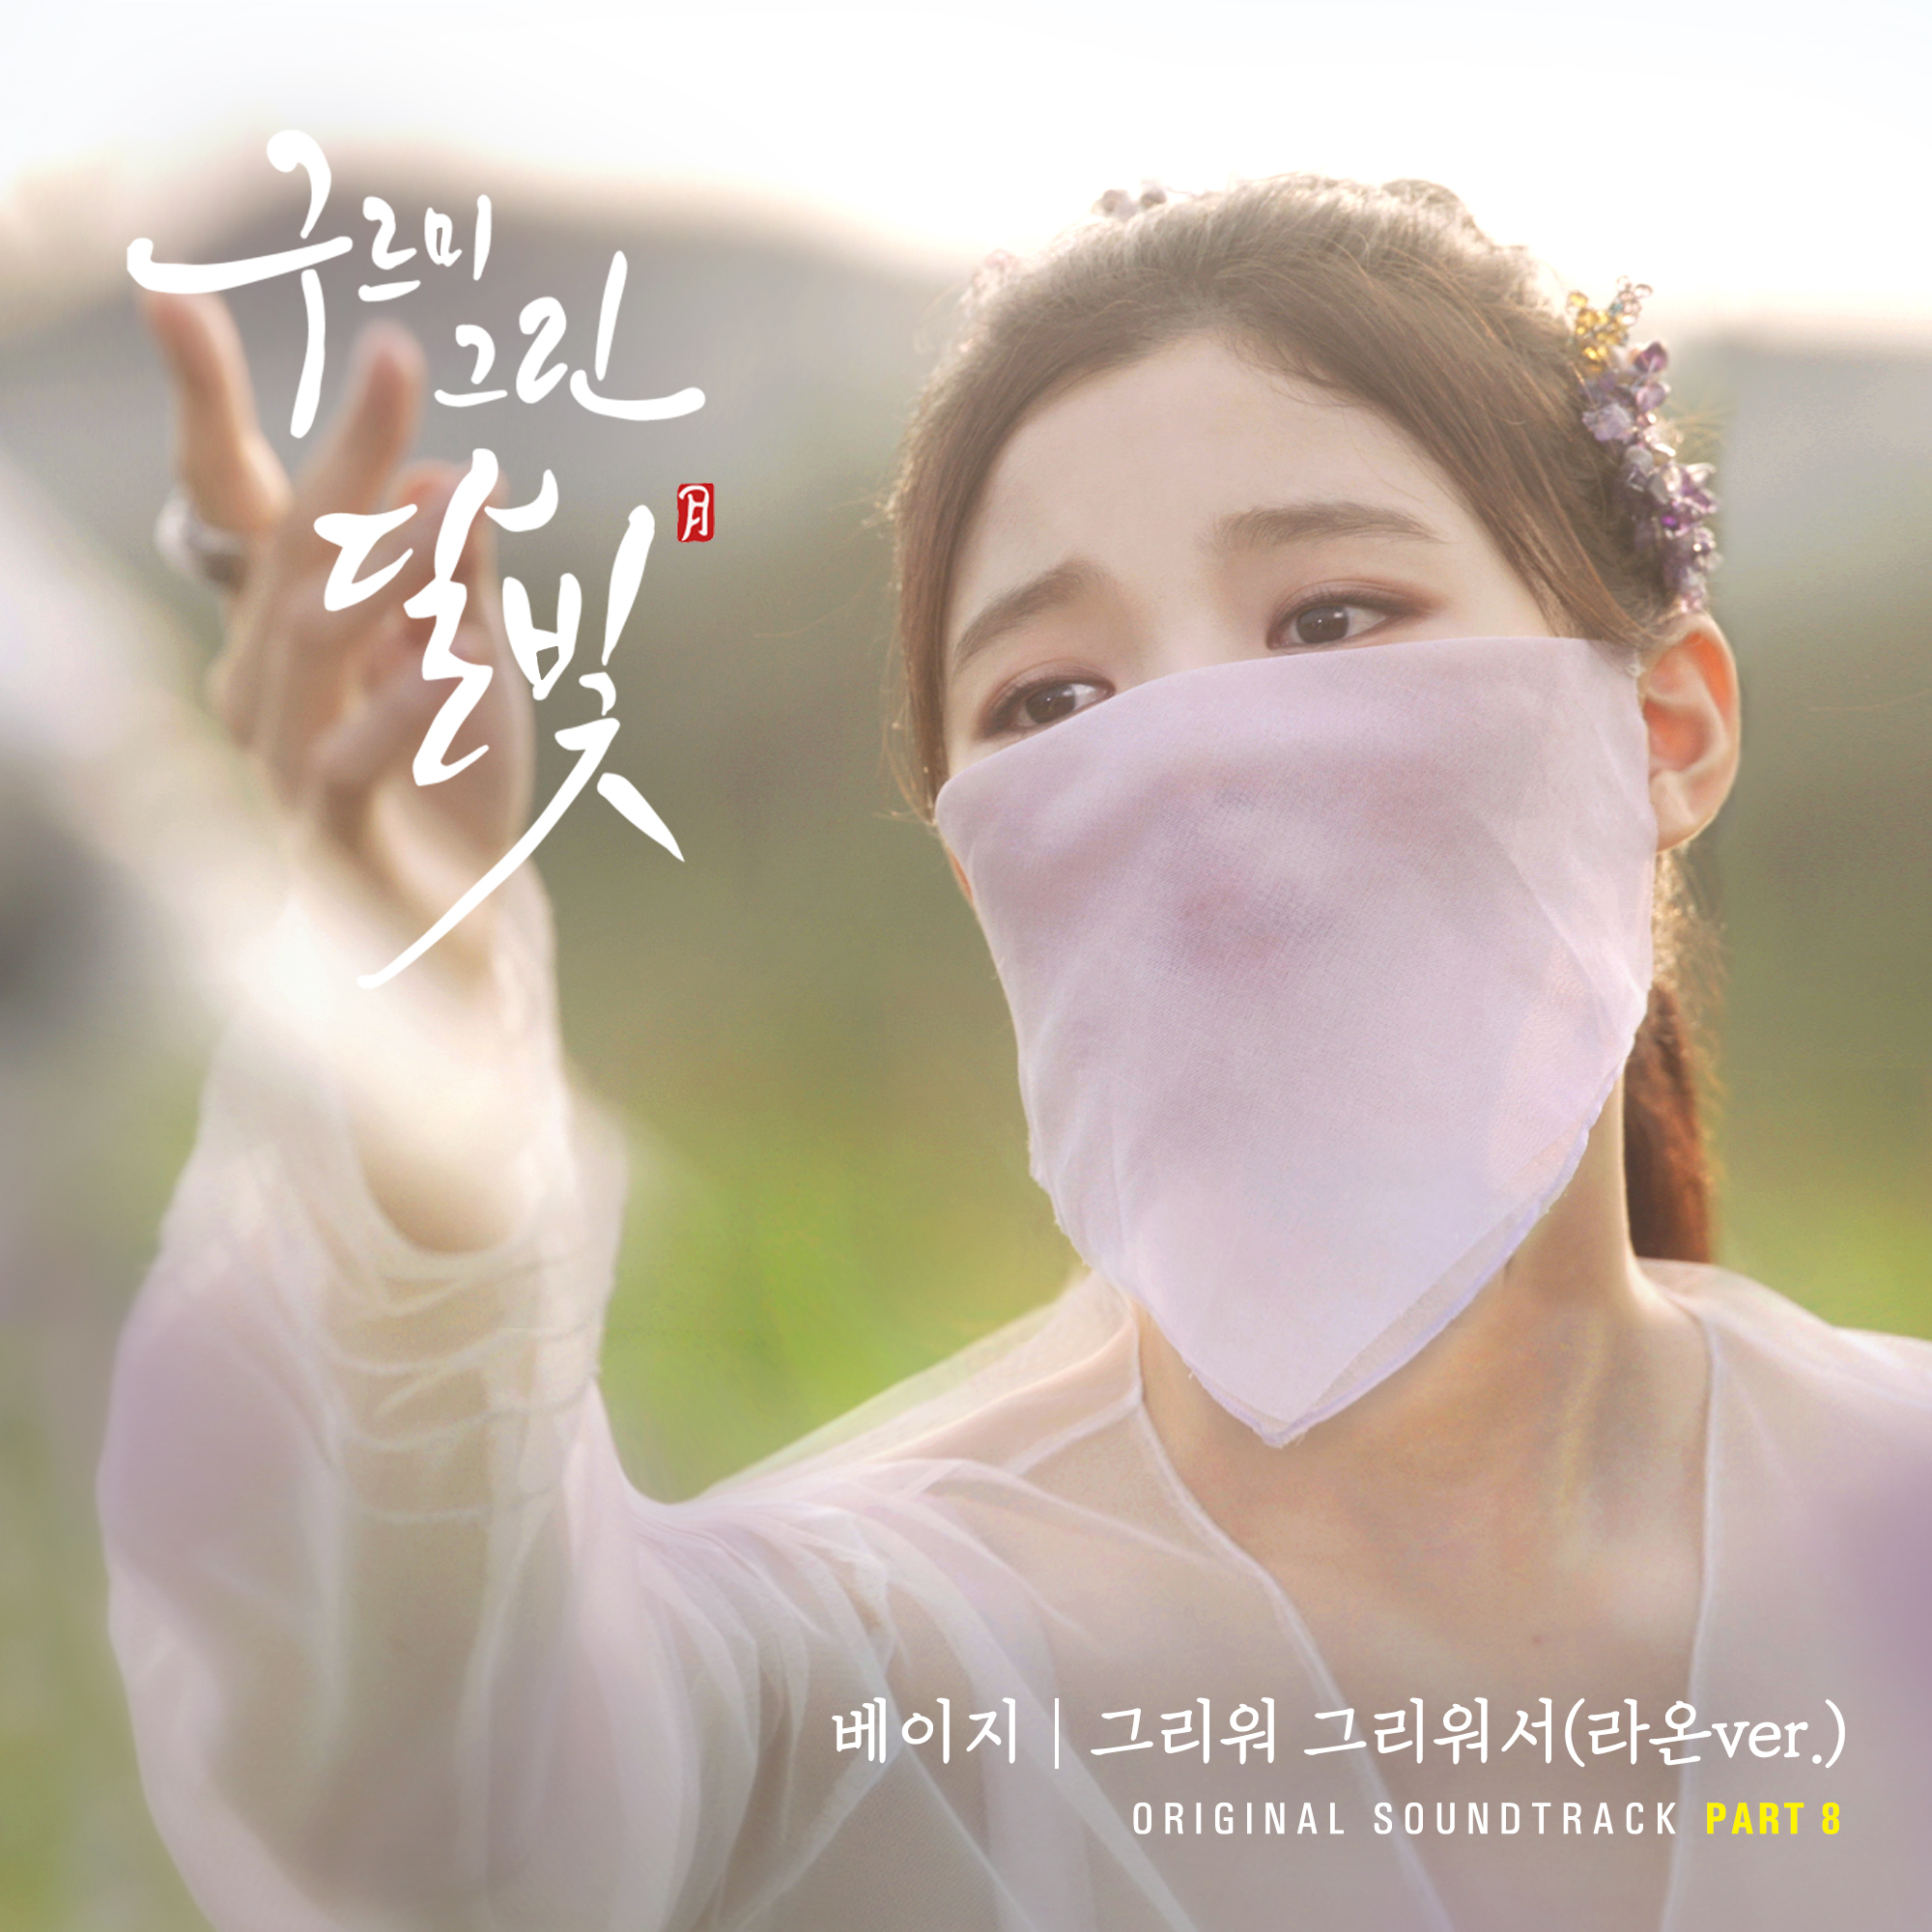 [Single] Beige – Moonlight Drawn by Clouds OST Part 8 (FLAC)